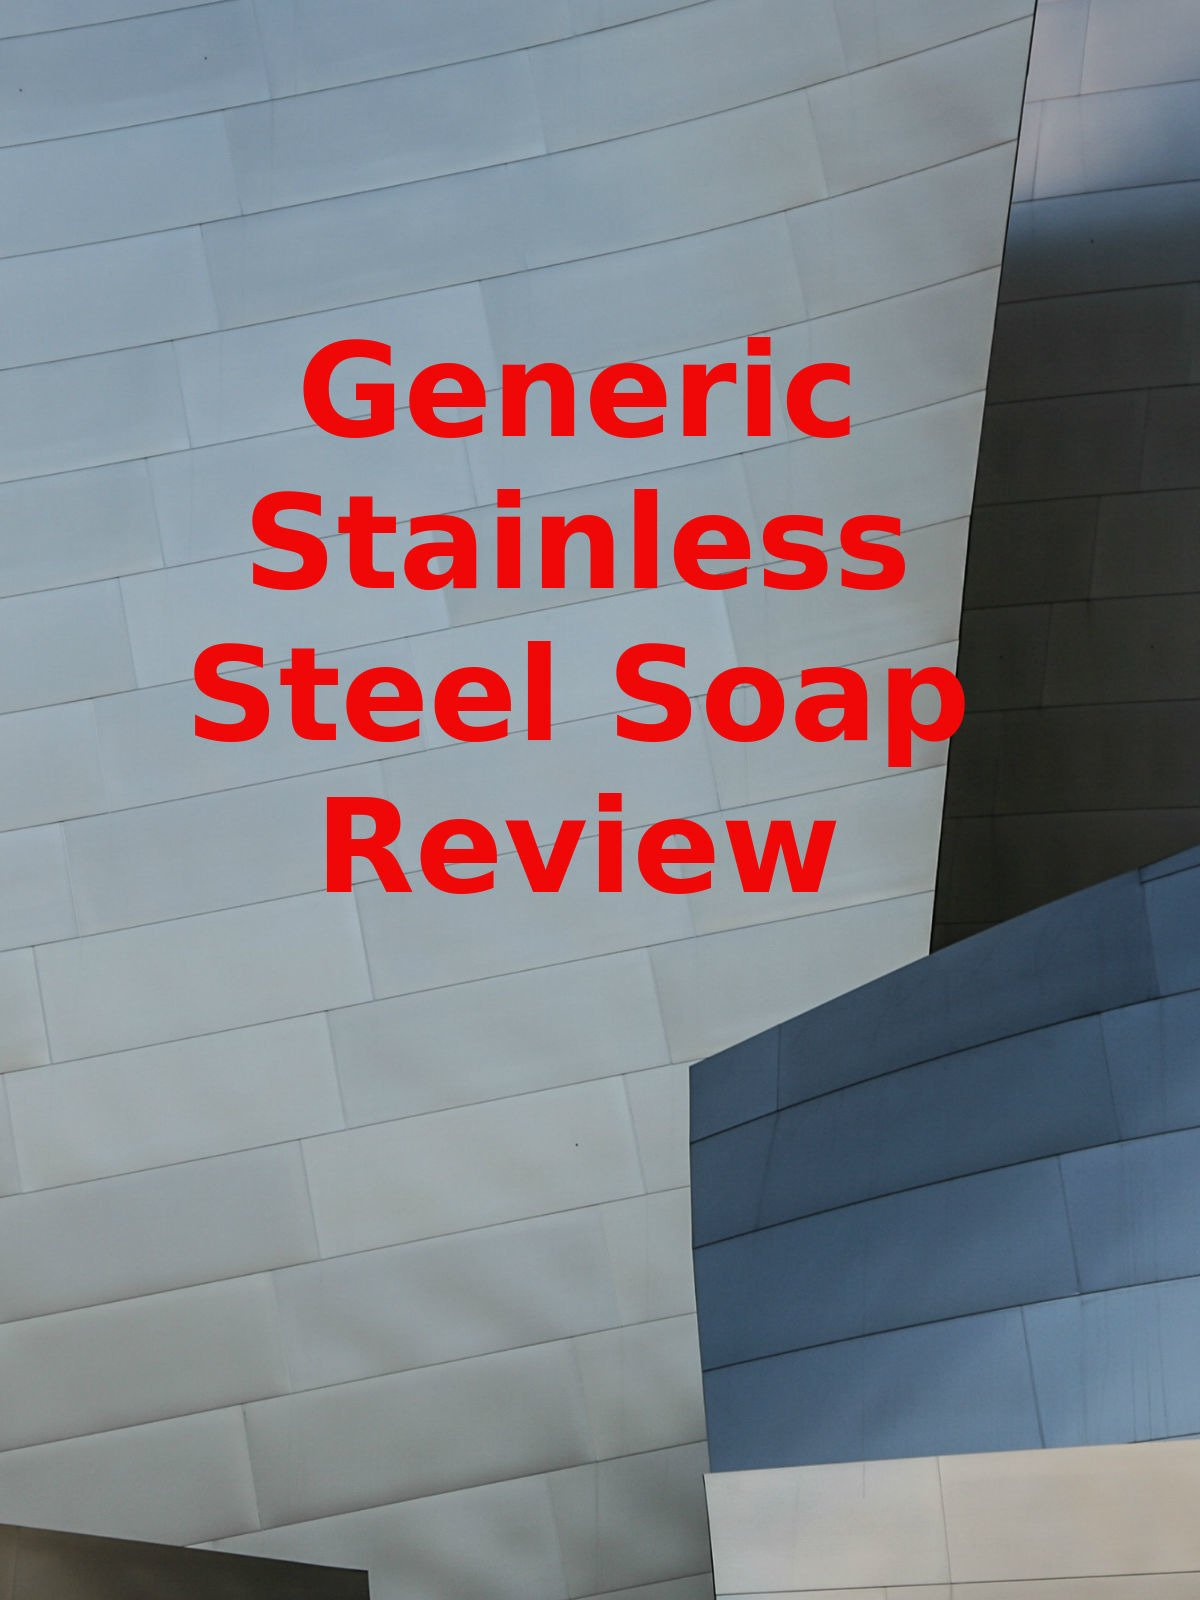 Review: Generic Stainless Steel Soap Review